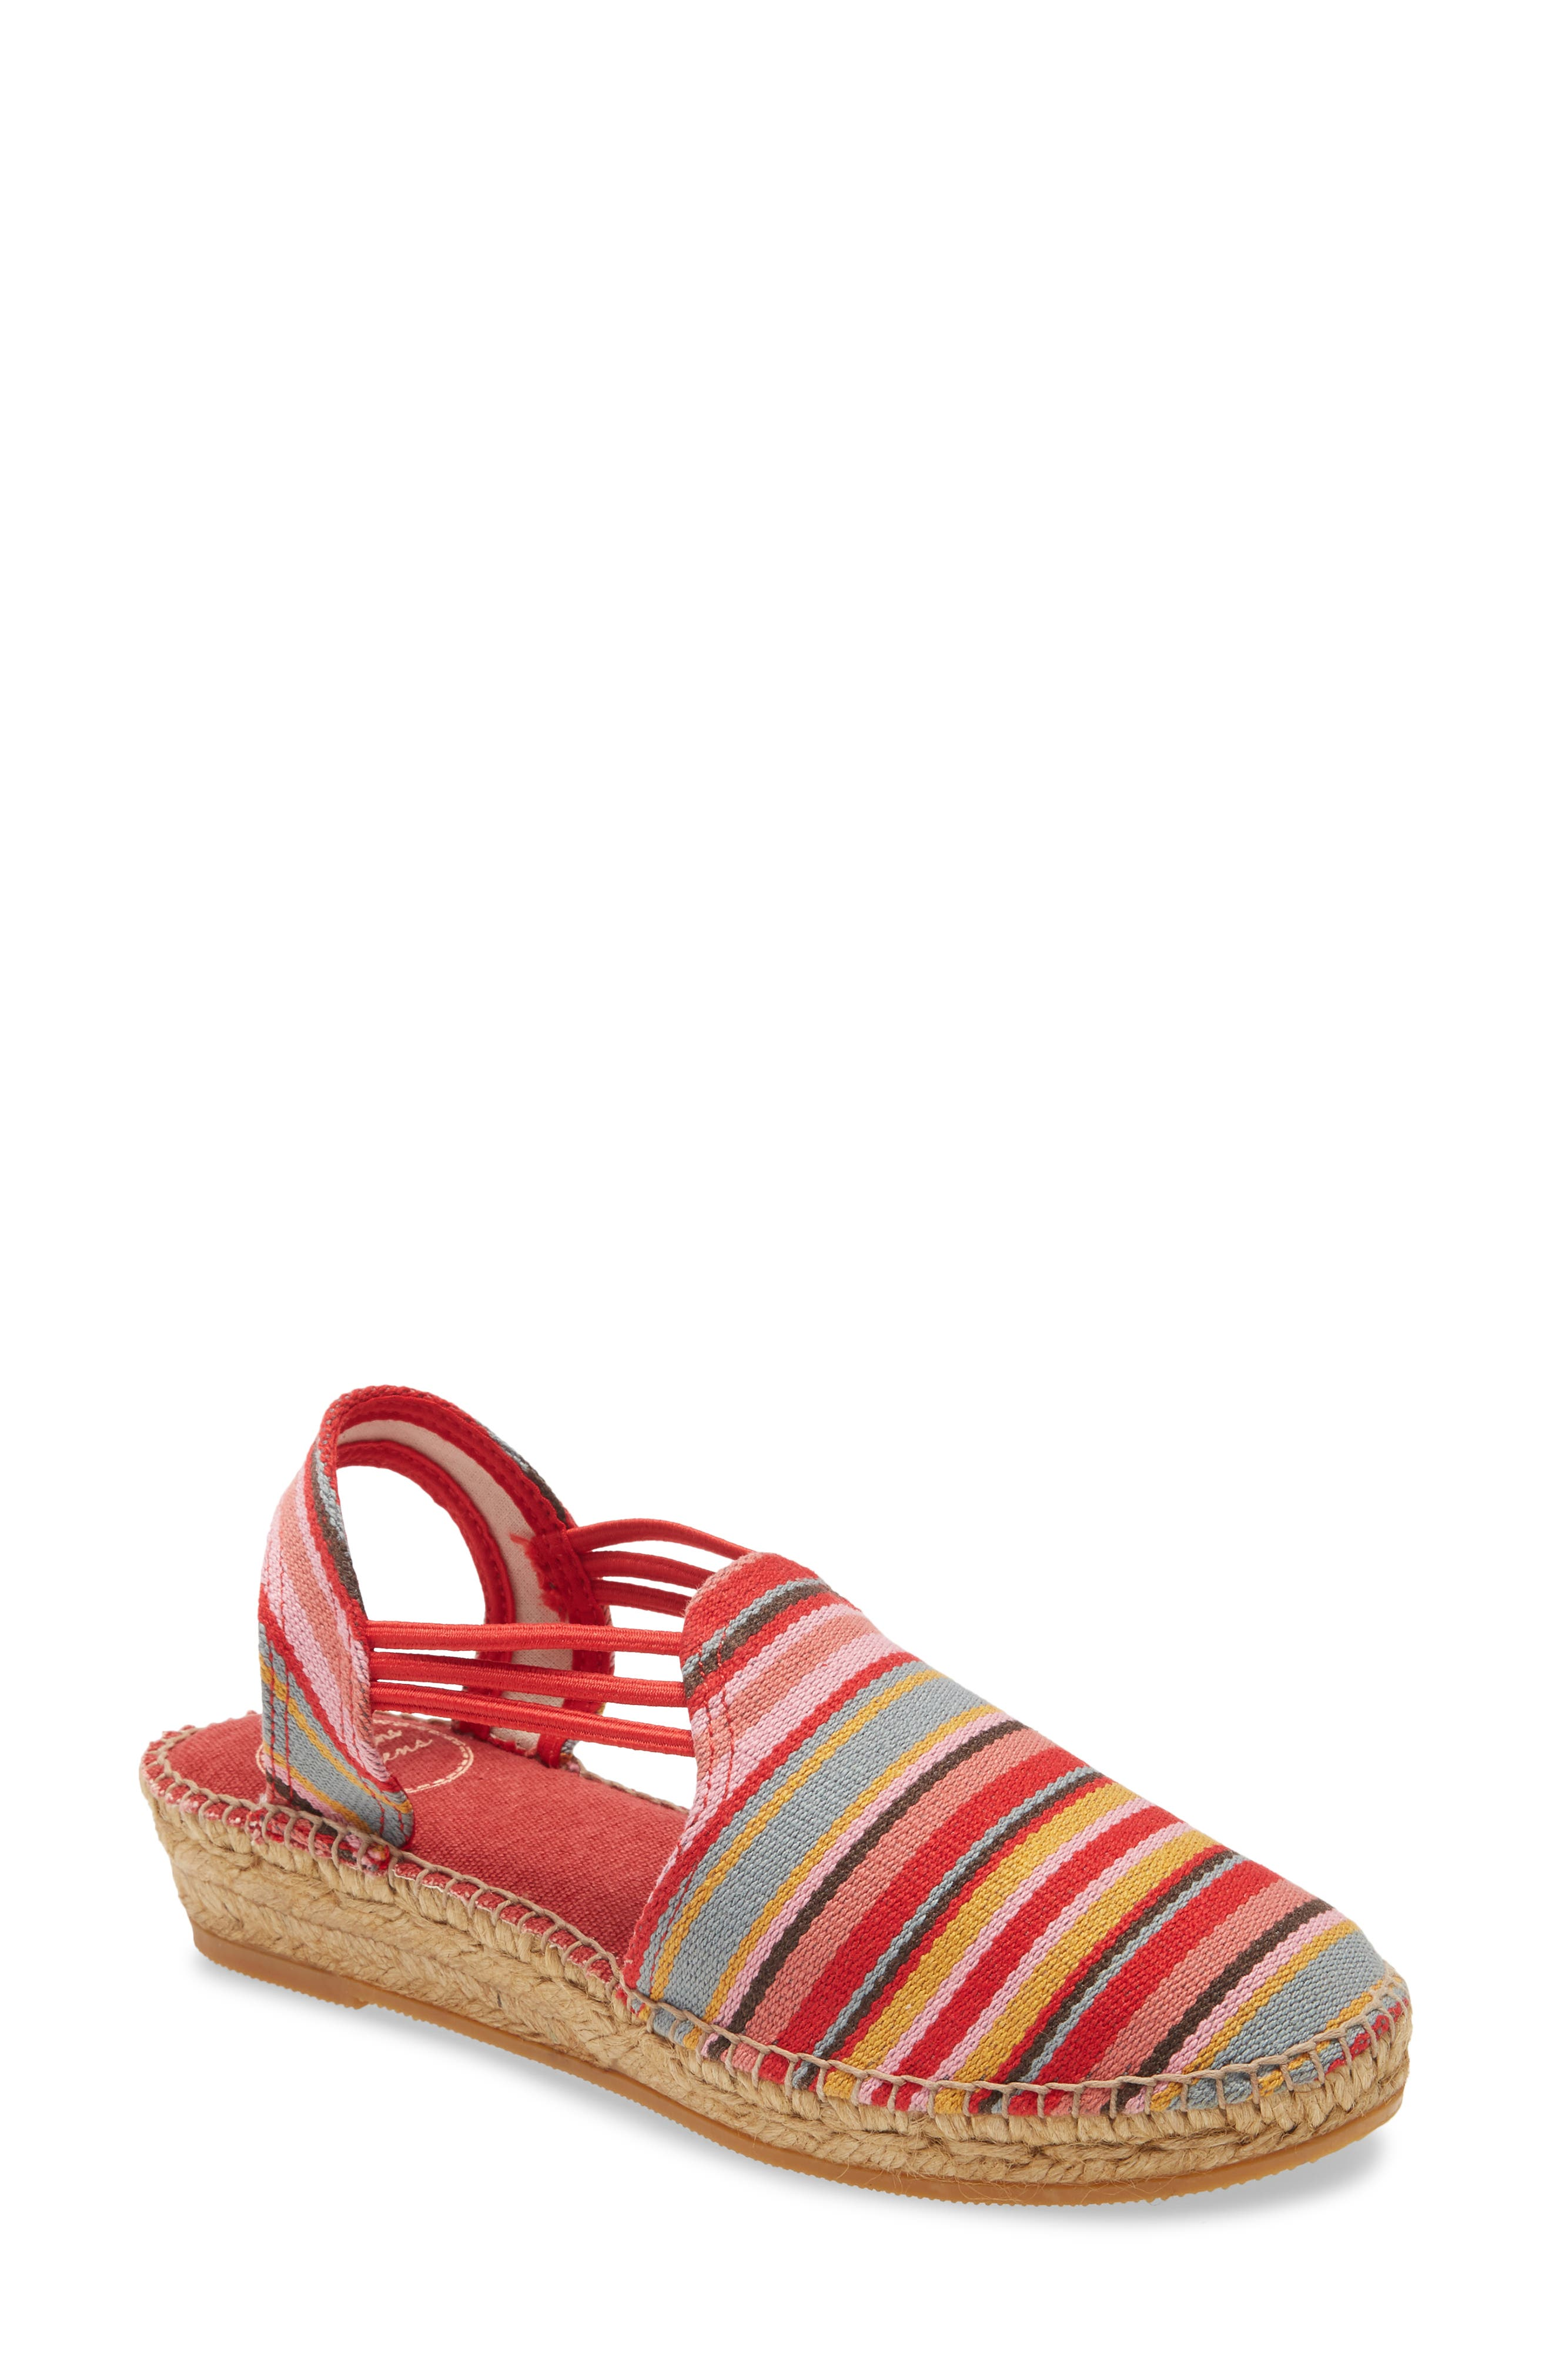 Get back to the basics in this handcrafted slingback espadrille outfitted with a cushioned footbed and elastic straps for a snug fit. Style Name: Toni Pons Norma Wedge Espadrille Sandal (Women). Style Number: 6134929. Available in stores.